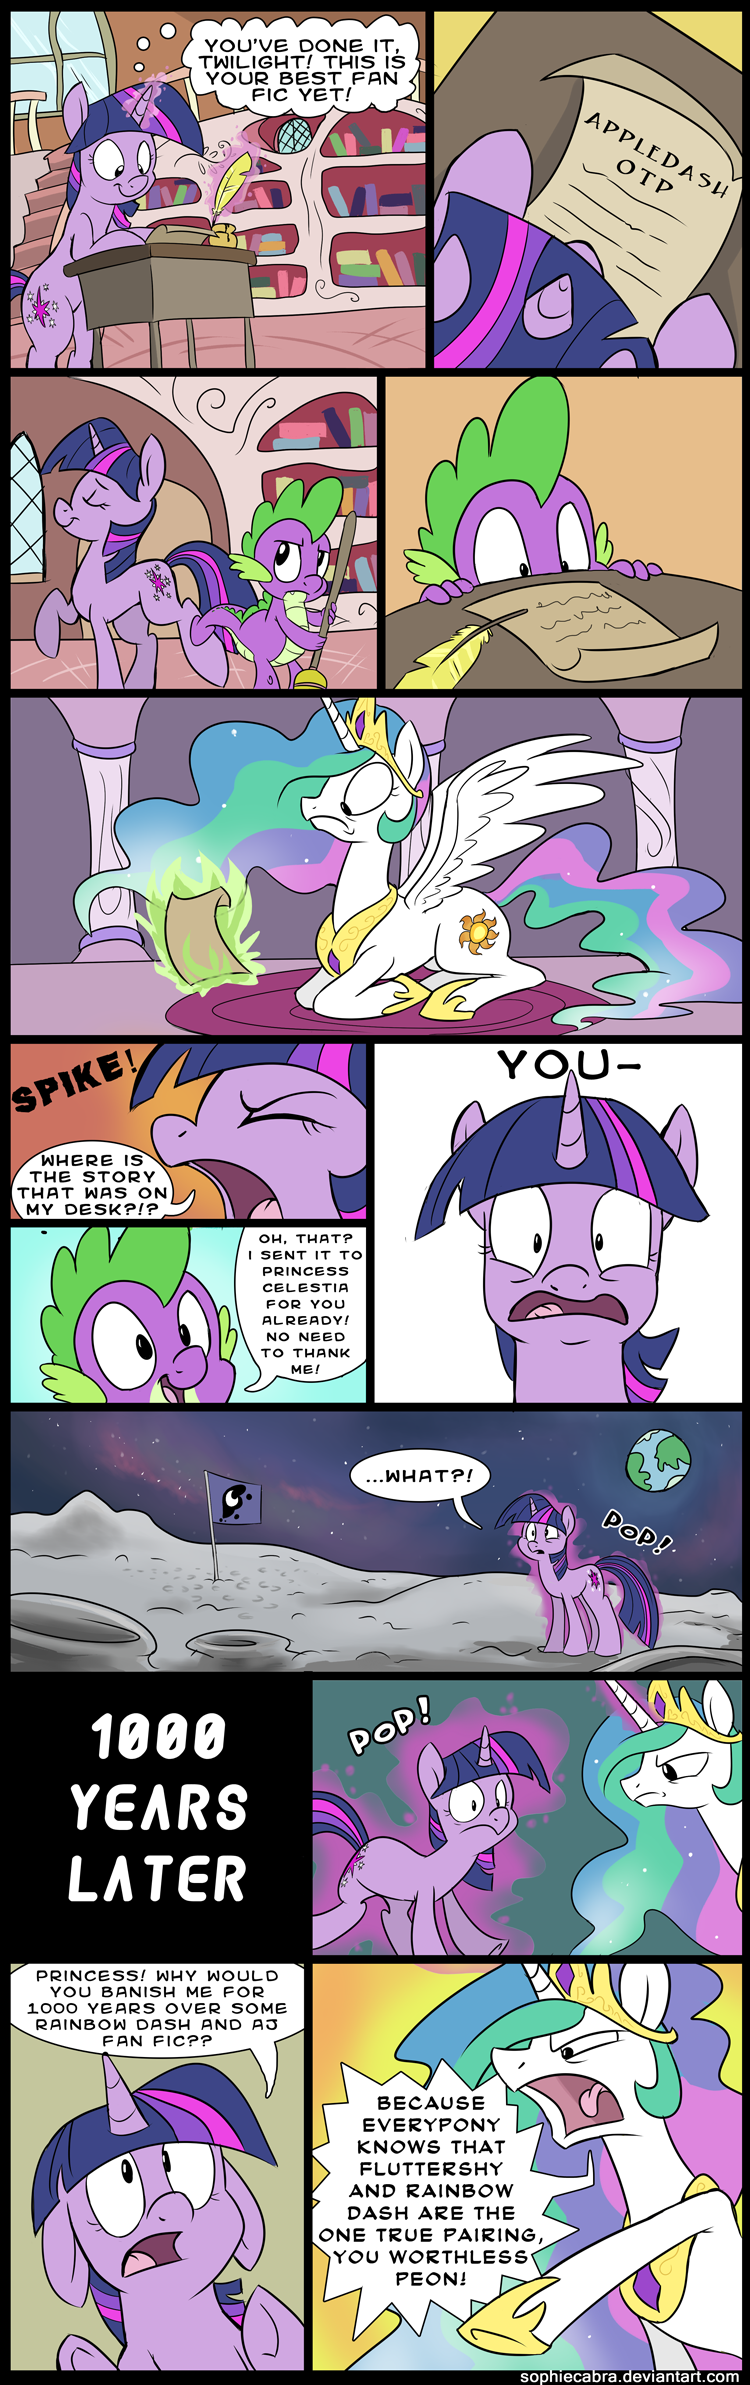 Comic: For Her Eyes Only by sophiecabra